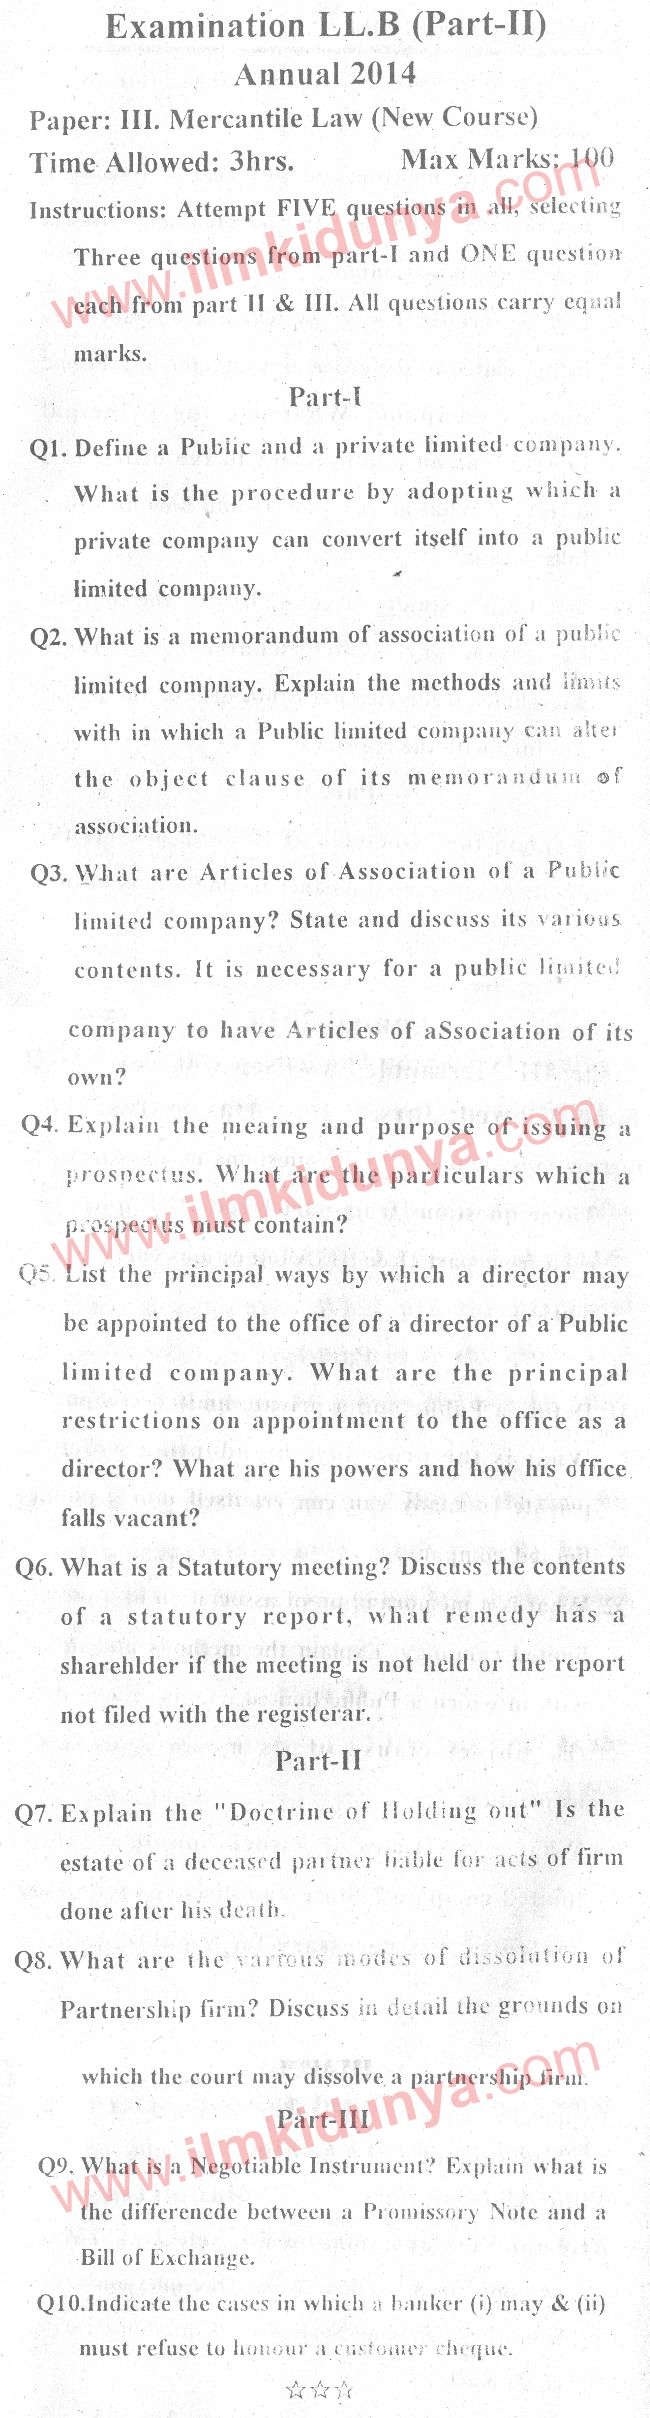 past papers 2014 llb part 2 mercantile company law paper 3 new course rh ilmkidunya com Law Merchant Calgary Law of Jersey